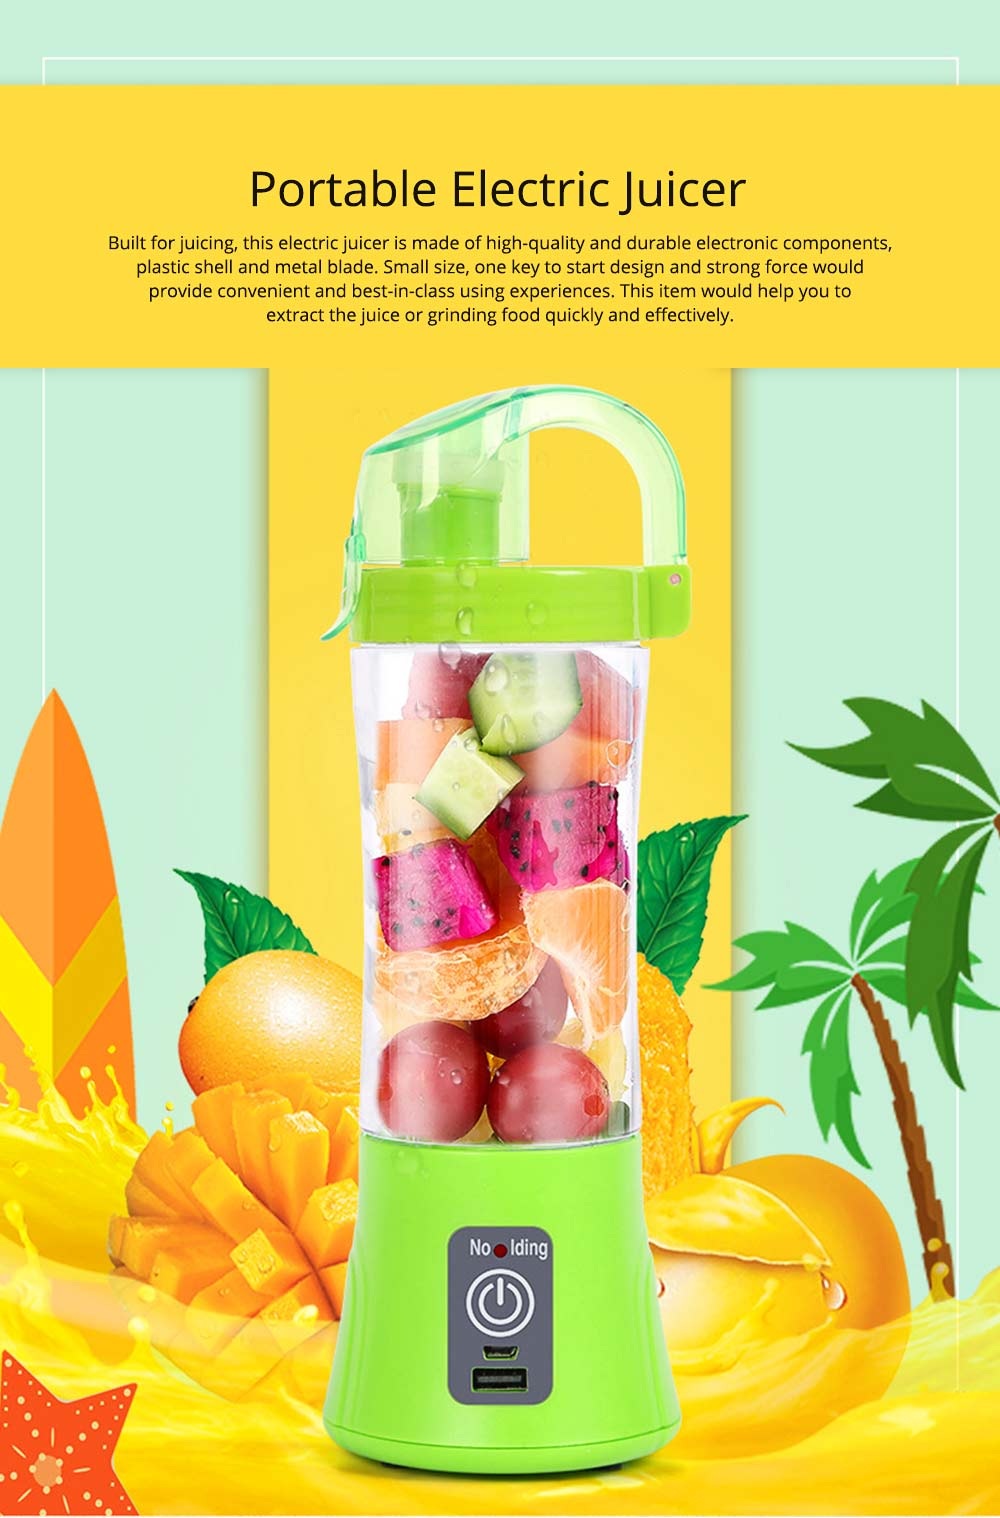 Portable Handy Household Electric Juicer, Multifunctional Juice Extractor Kitchen Tools with Power Bank Function 0